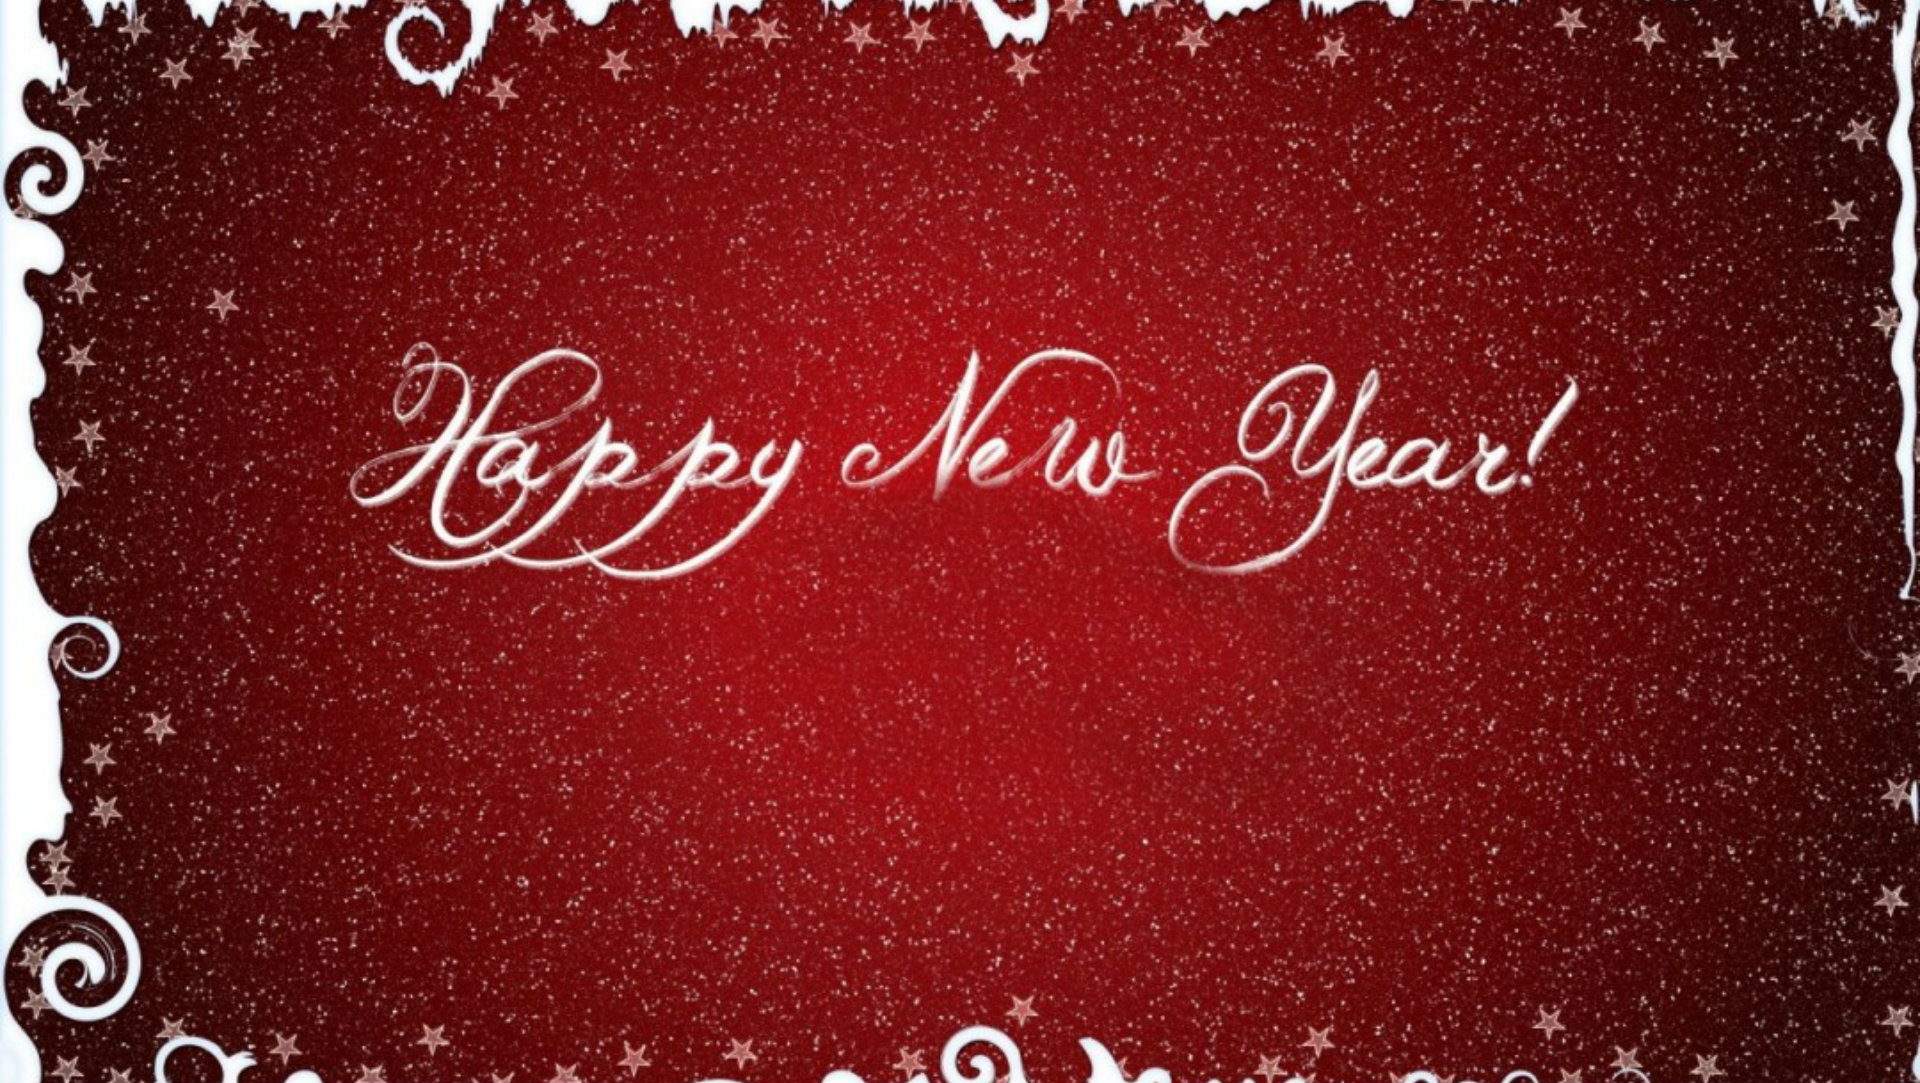 Free download New Year Wallpapers and HD Images Happy Wishes